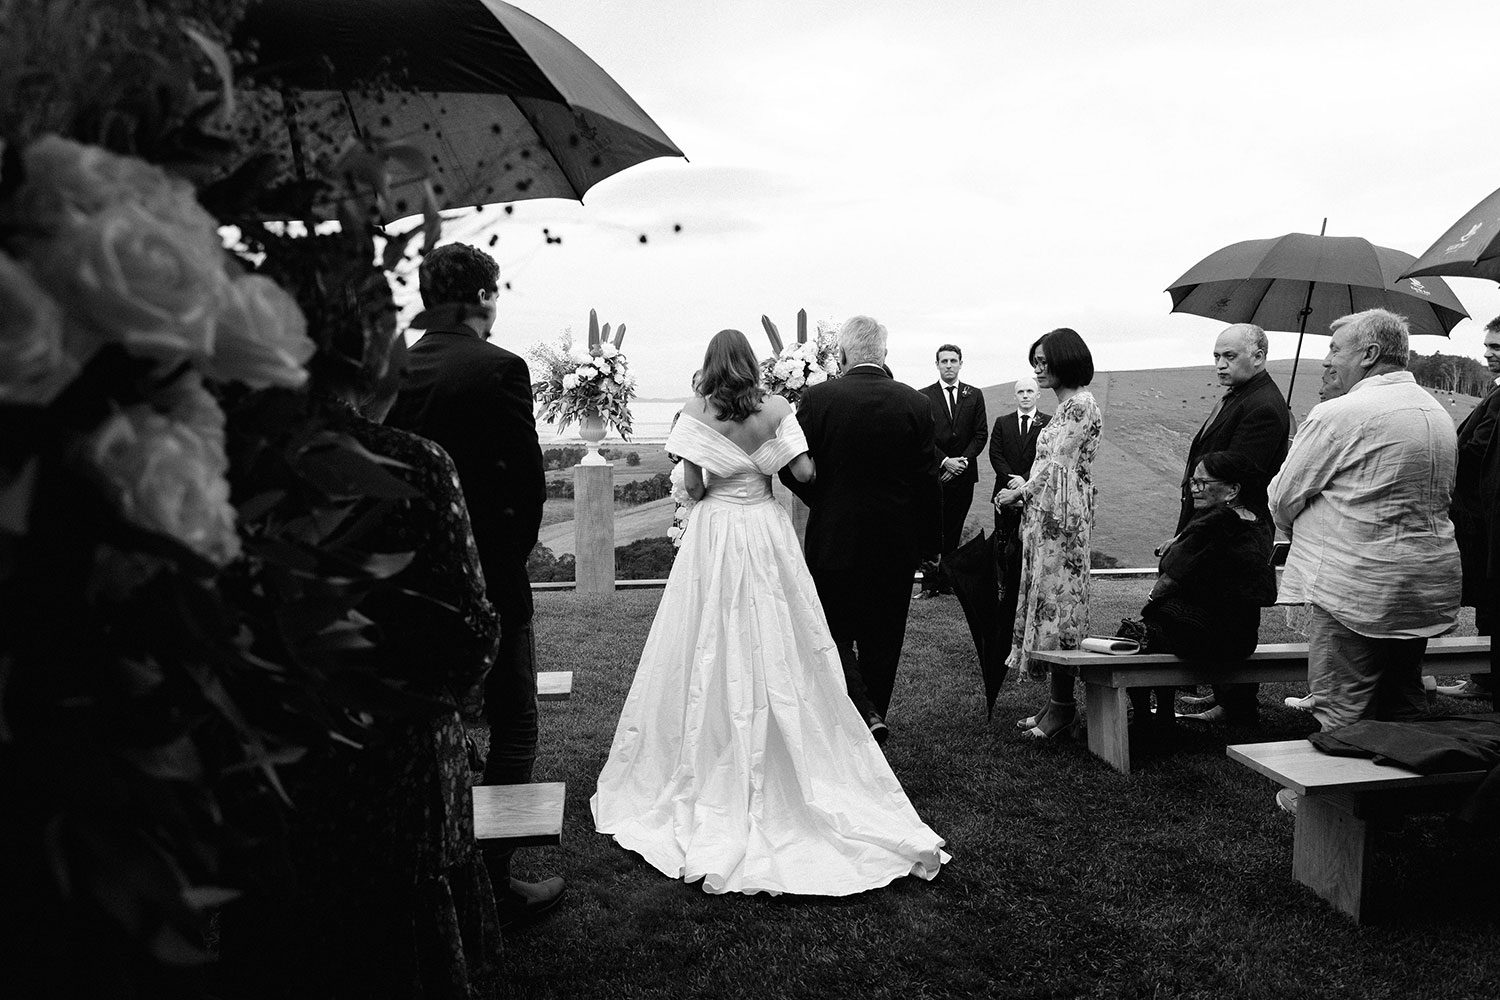 Bride wearing bespoke off shoulder bodice made with silk dupion and long train by NZ wedding dress maker Vinka Designs - black and white walking down aisle